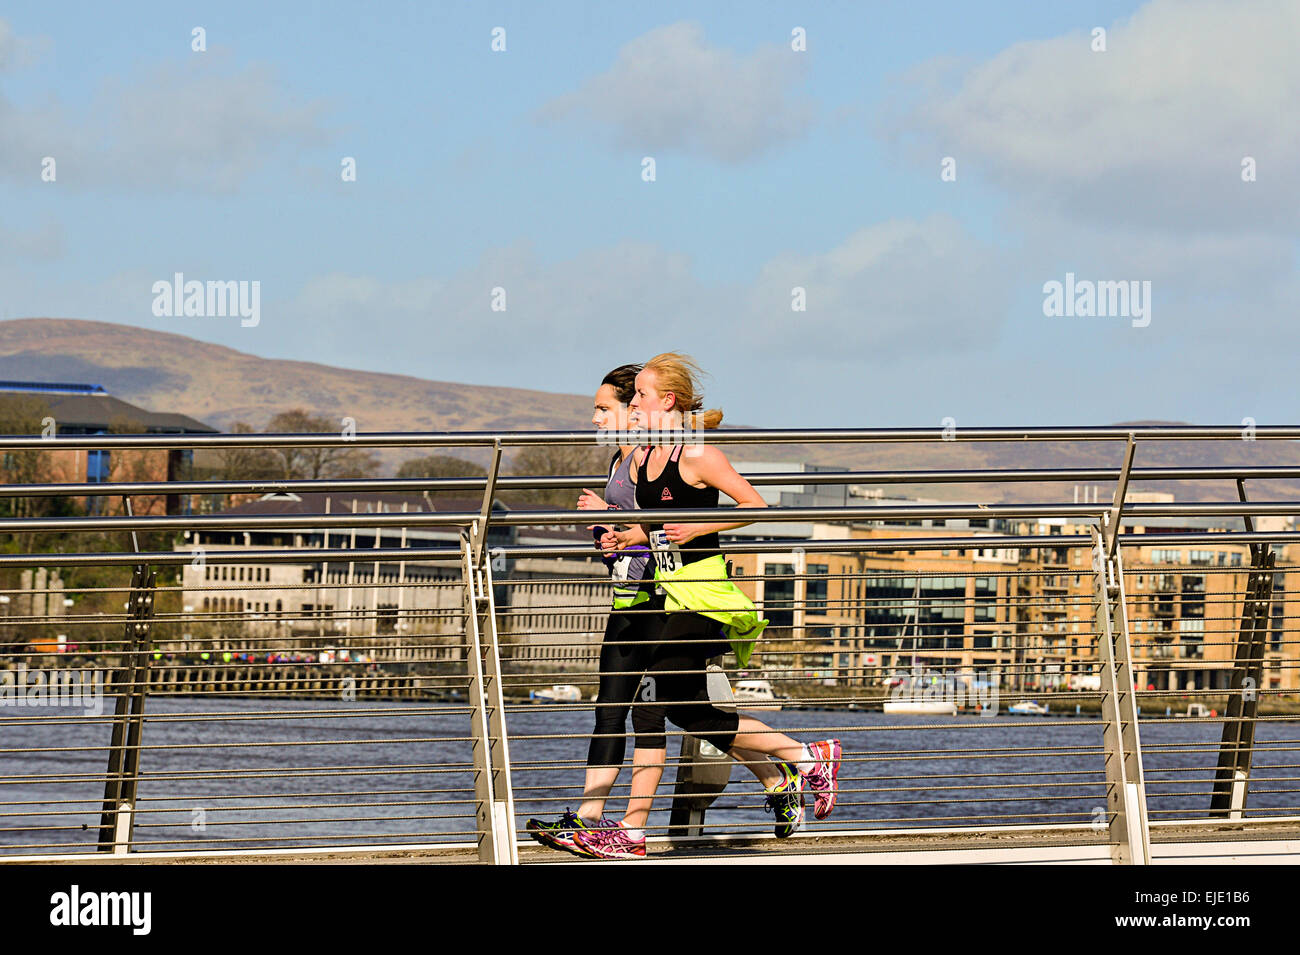 Runners participating in a half-marathon race in Londonderry, Derry, Northern Ireland - Stock Image